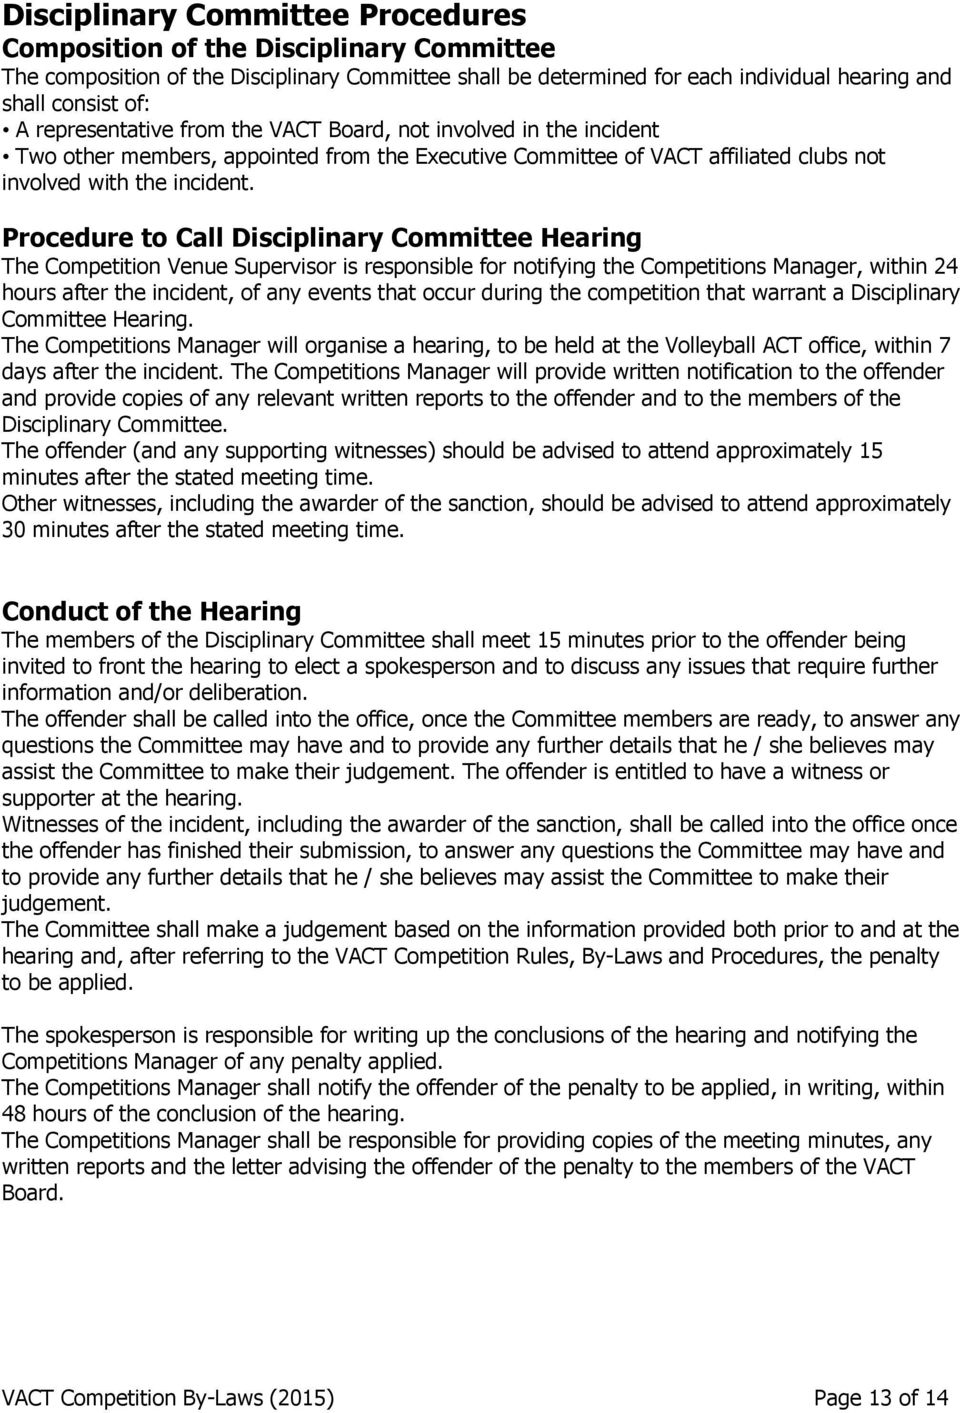 Procedure to Call Disciplinary Committee Hearing The Competition Venue Supervisor is responsible for notifying the Competitions Manager, within 24 hours after the incident, of any events that occur